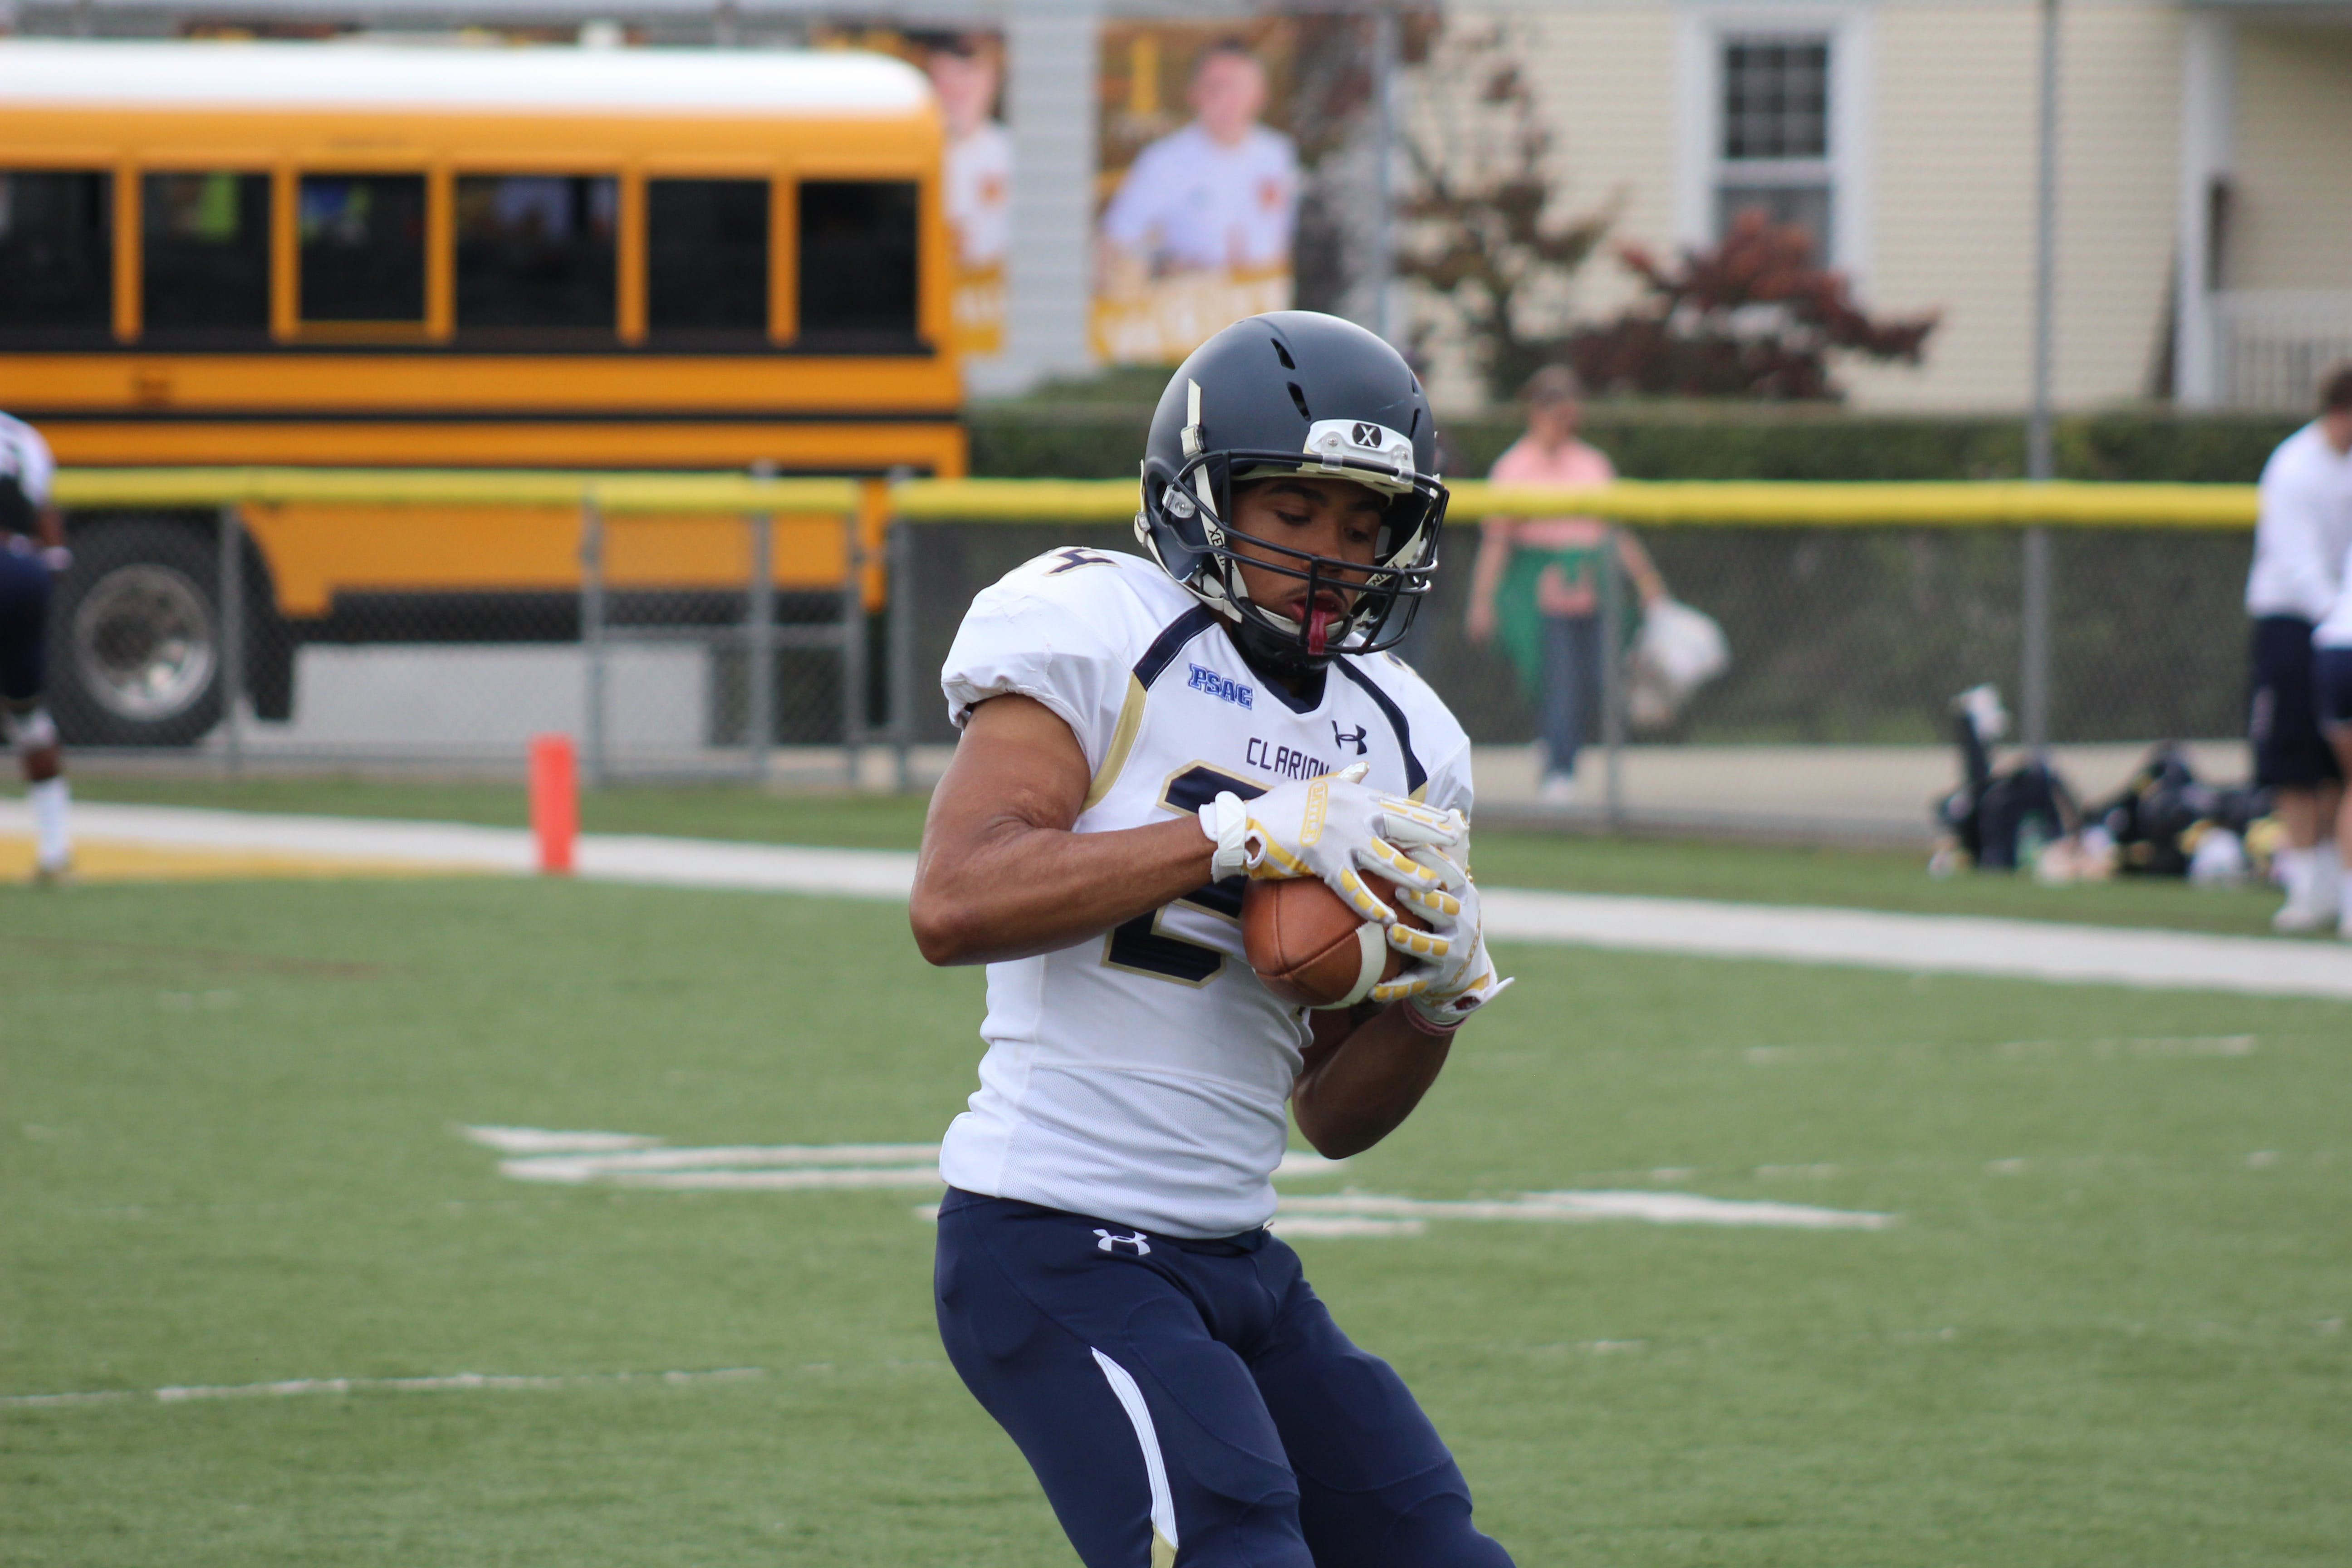 Shallow Focus Photography of Football Player